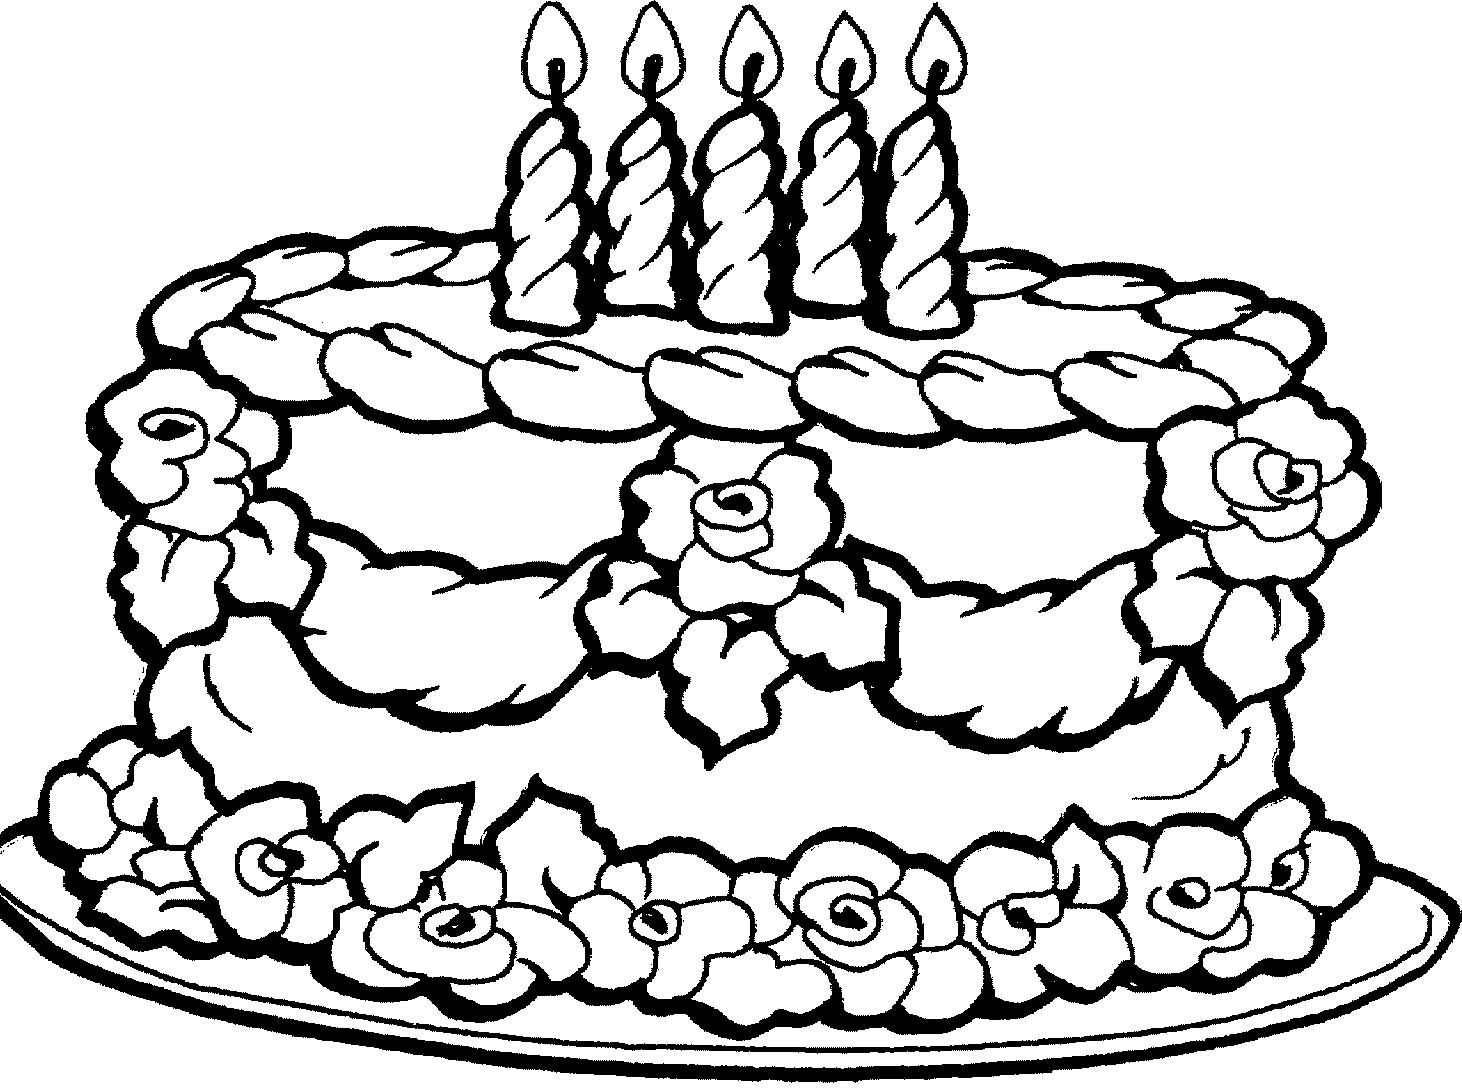 Coloring Pages Of Birthday Cakes Dragon With Happy Cake Page Free - Free Printable Pictures Of Birthday Cakes